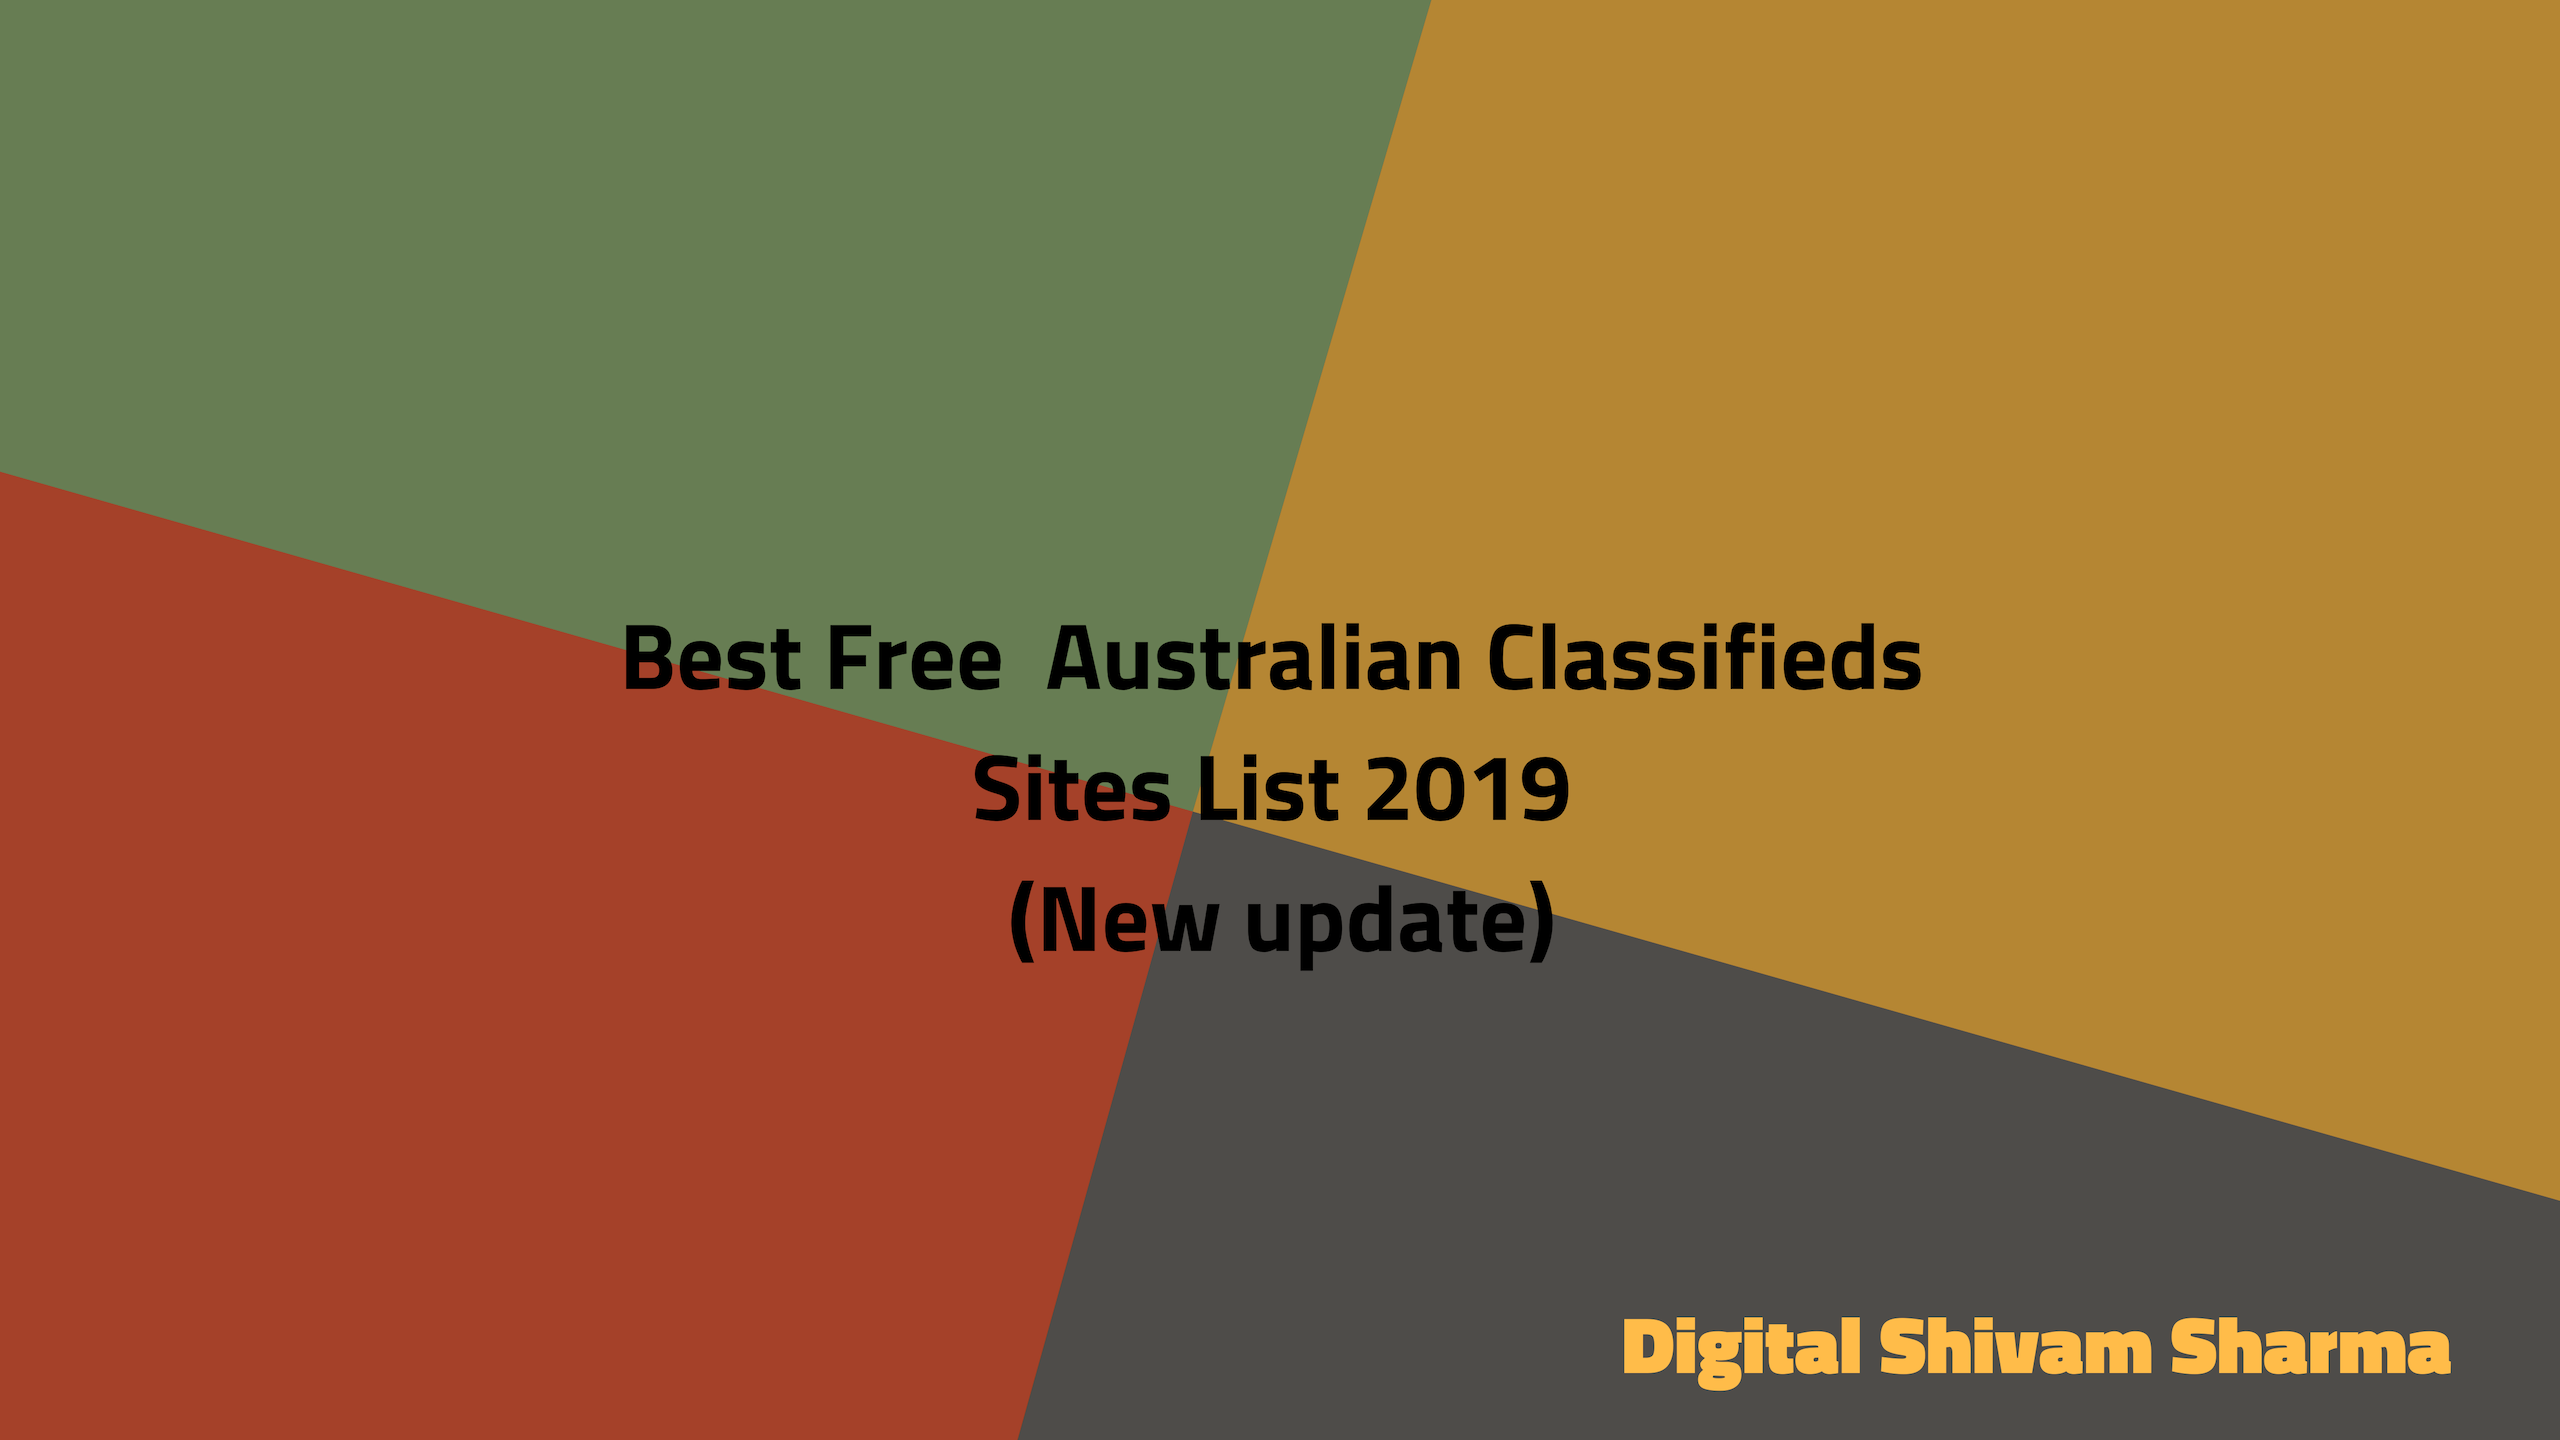 Best Top Free Australian Classifieds Sites List 2019 (New update)